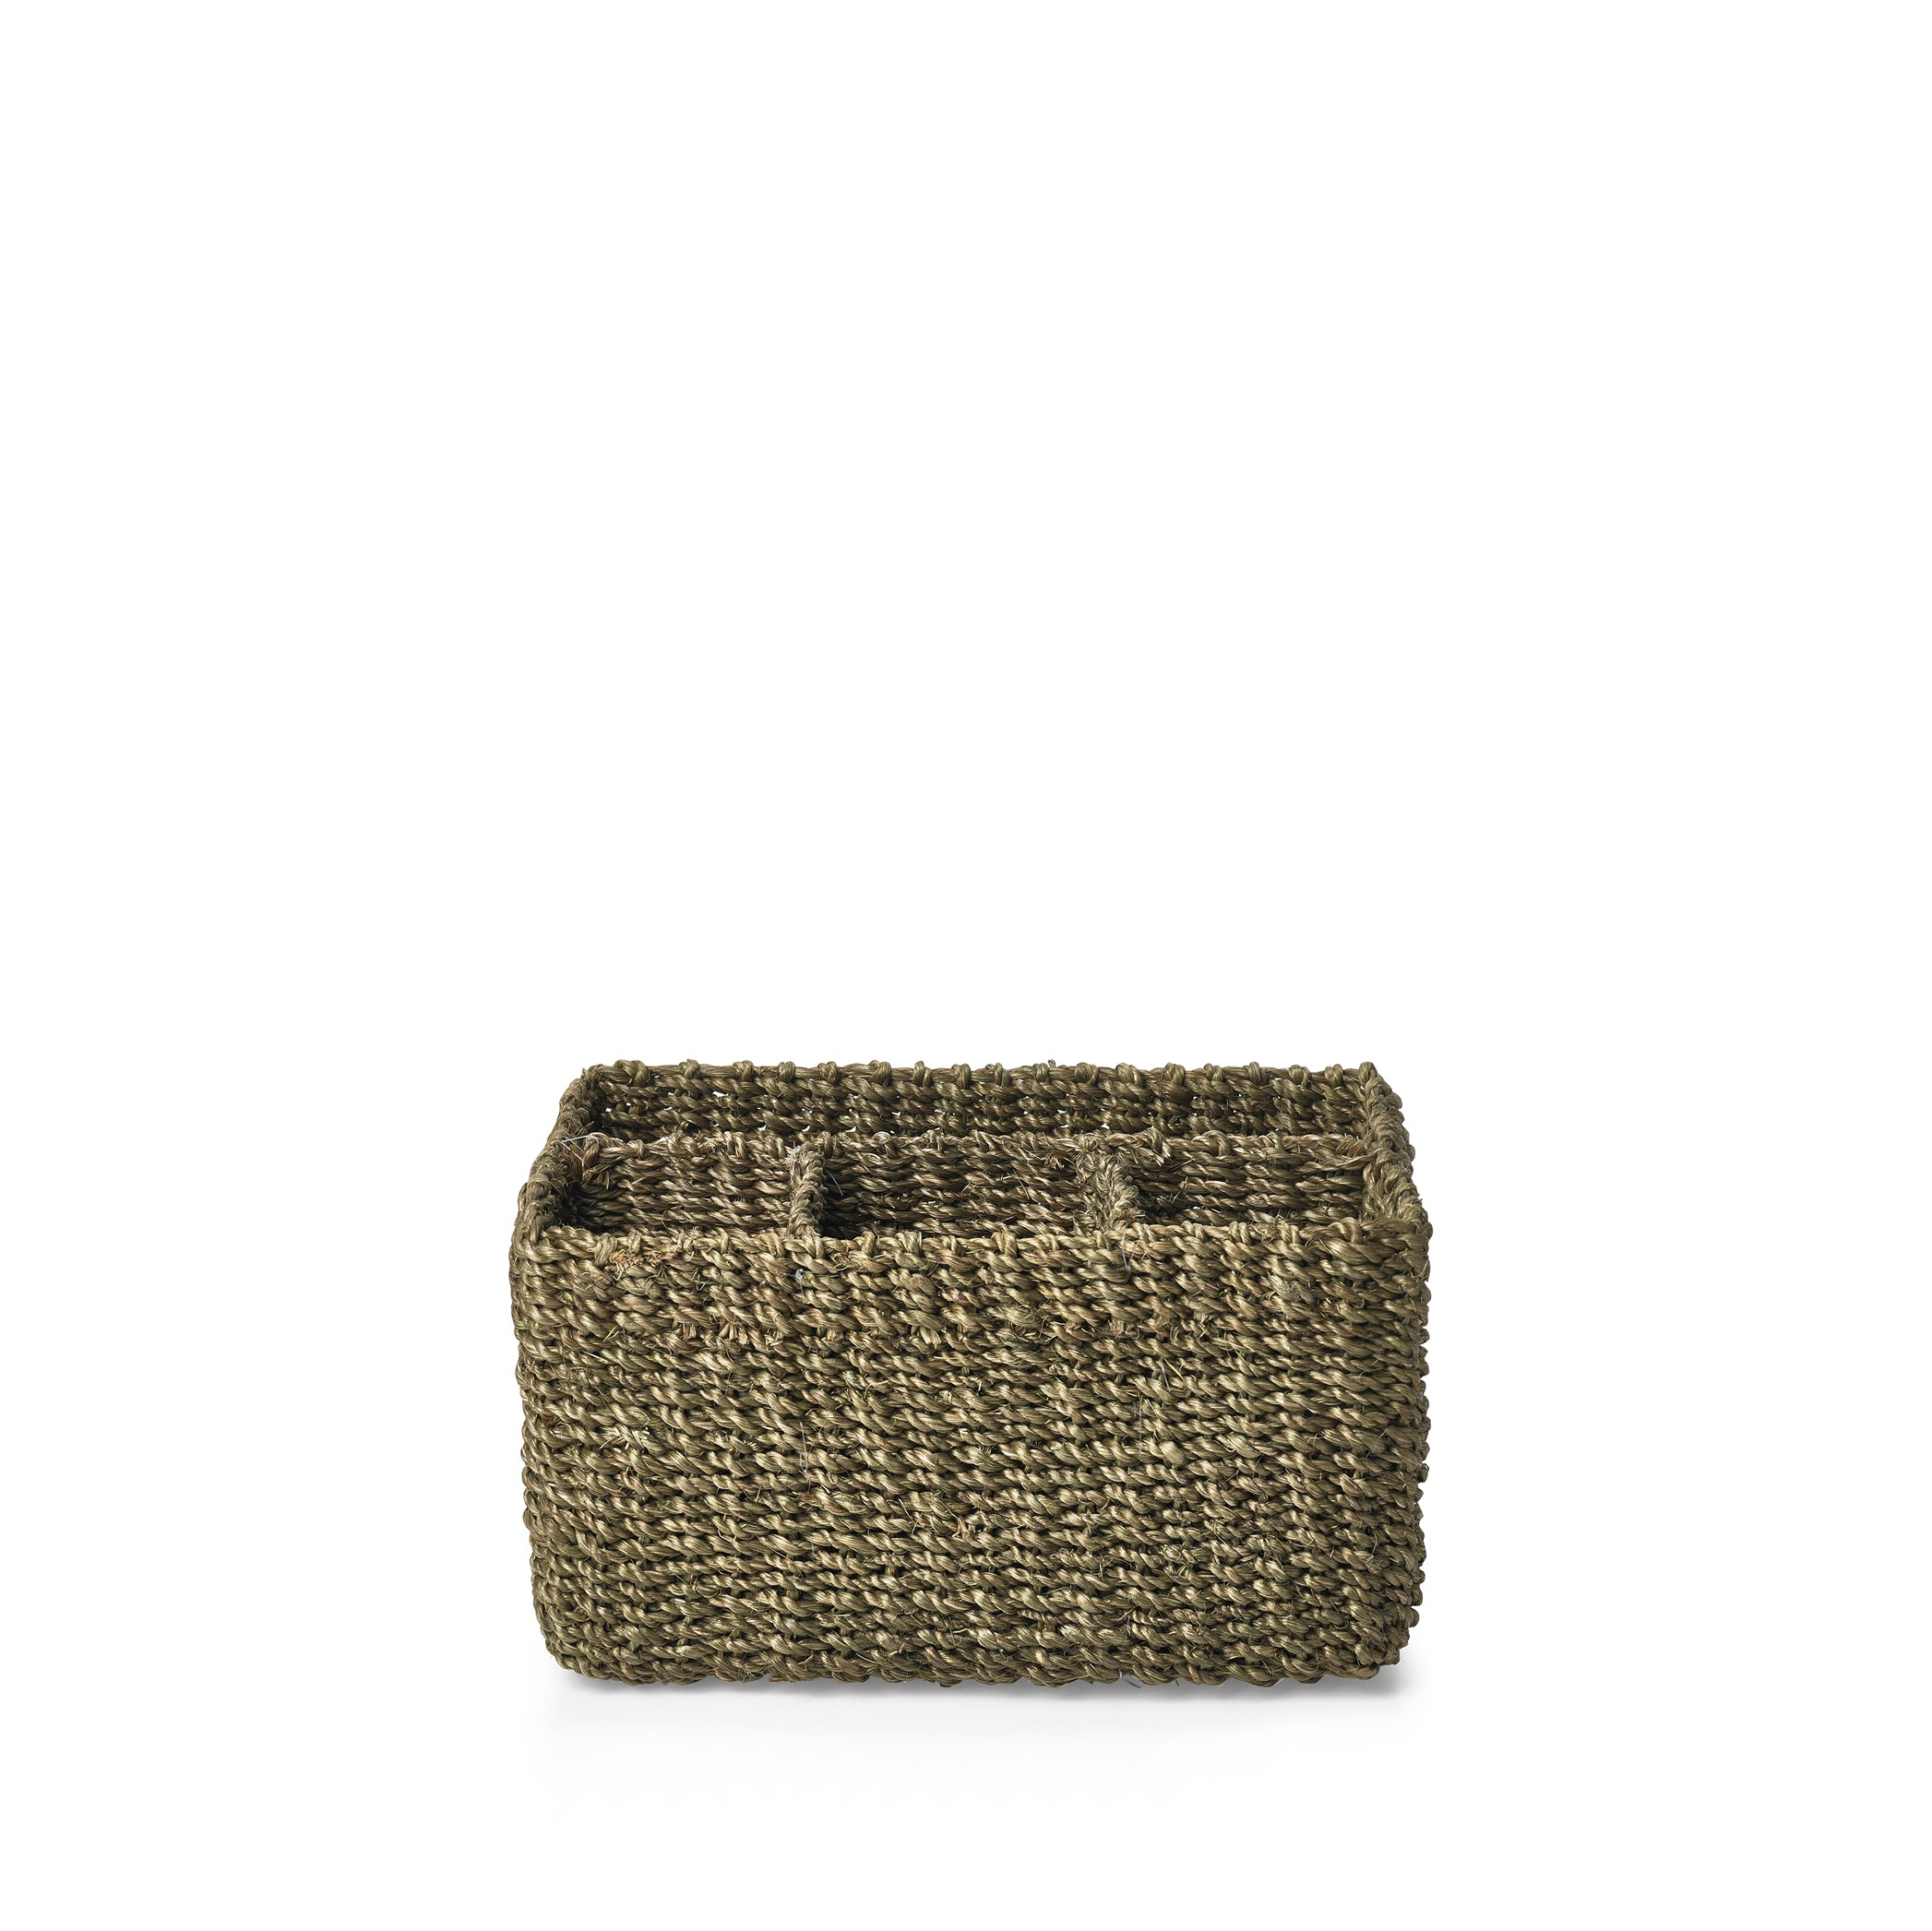 Abaca Woven Cutlery Basket in Sage